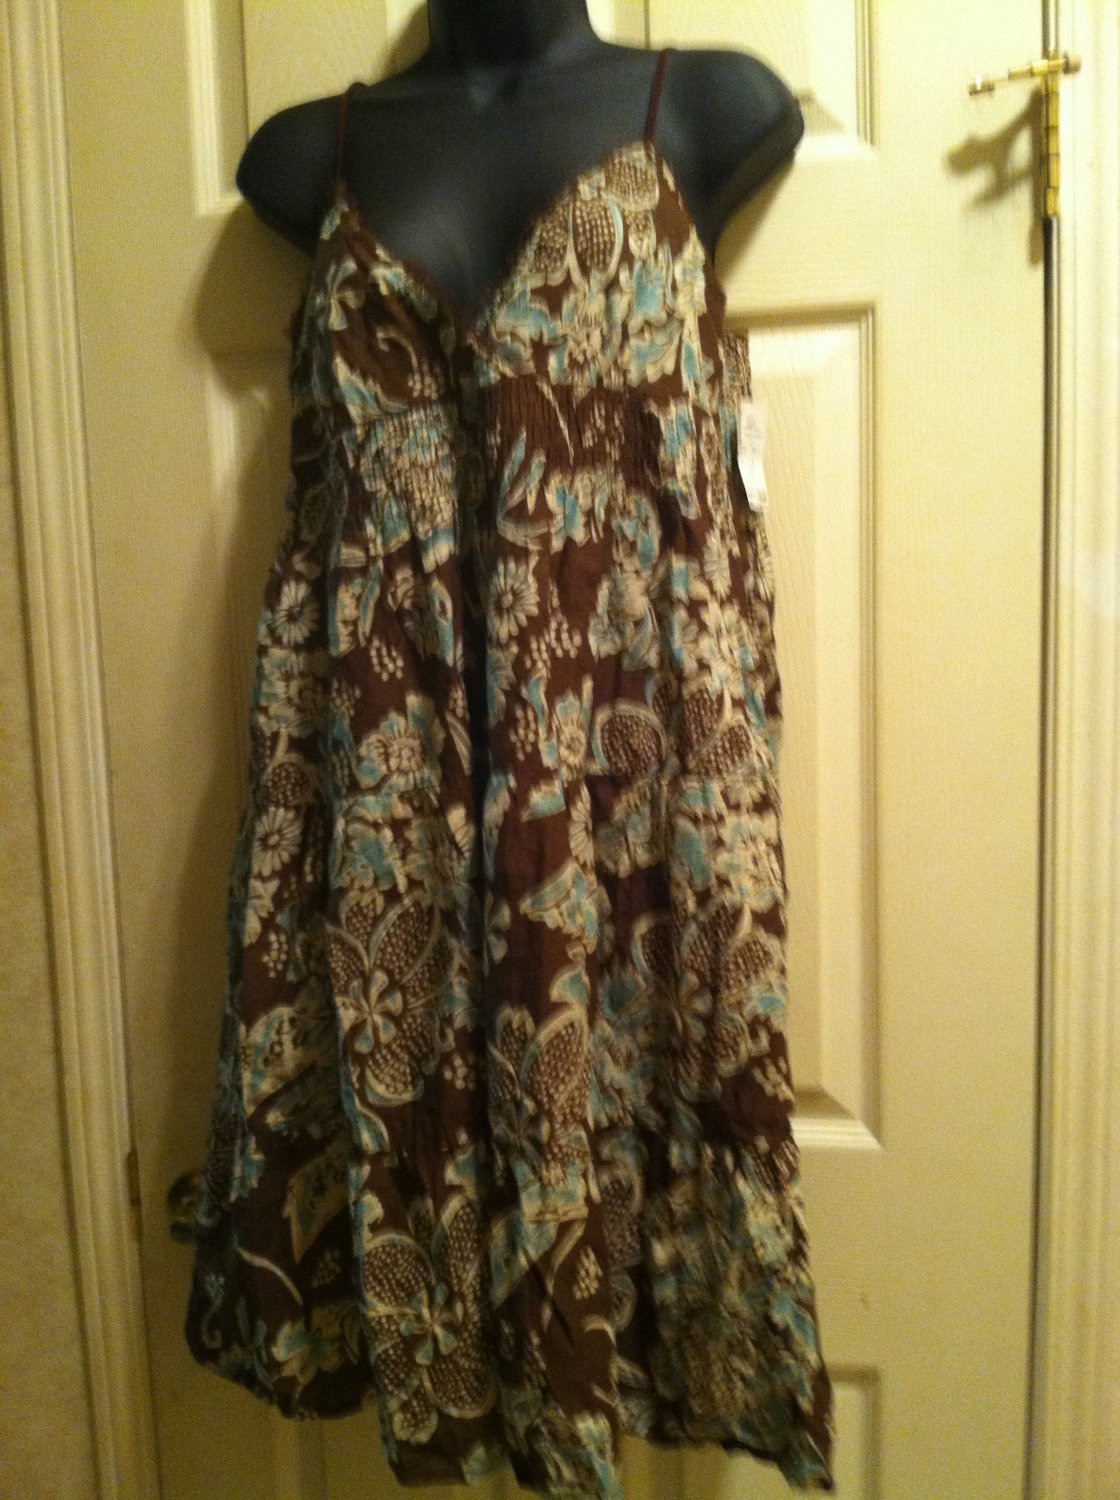 Women's Summer Dress From Rue 21